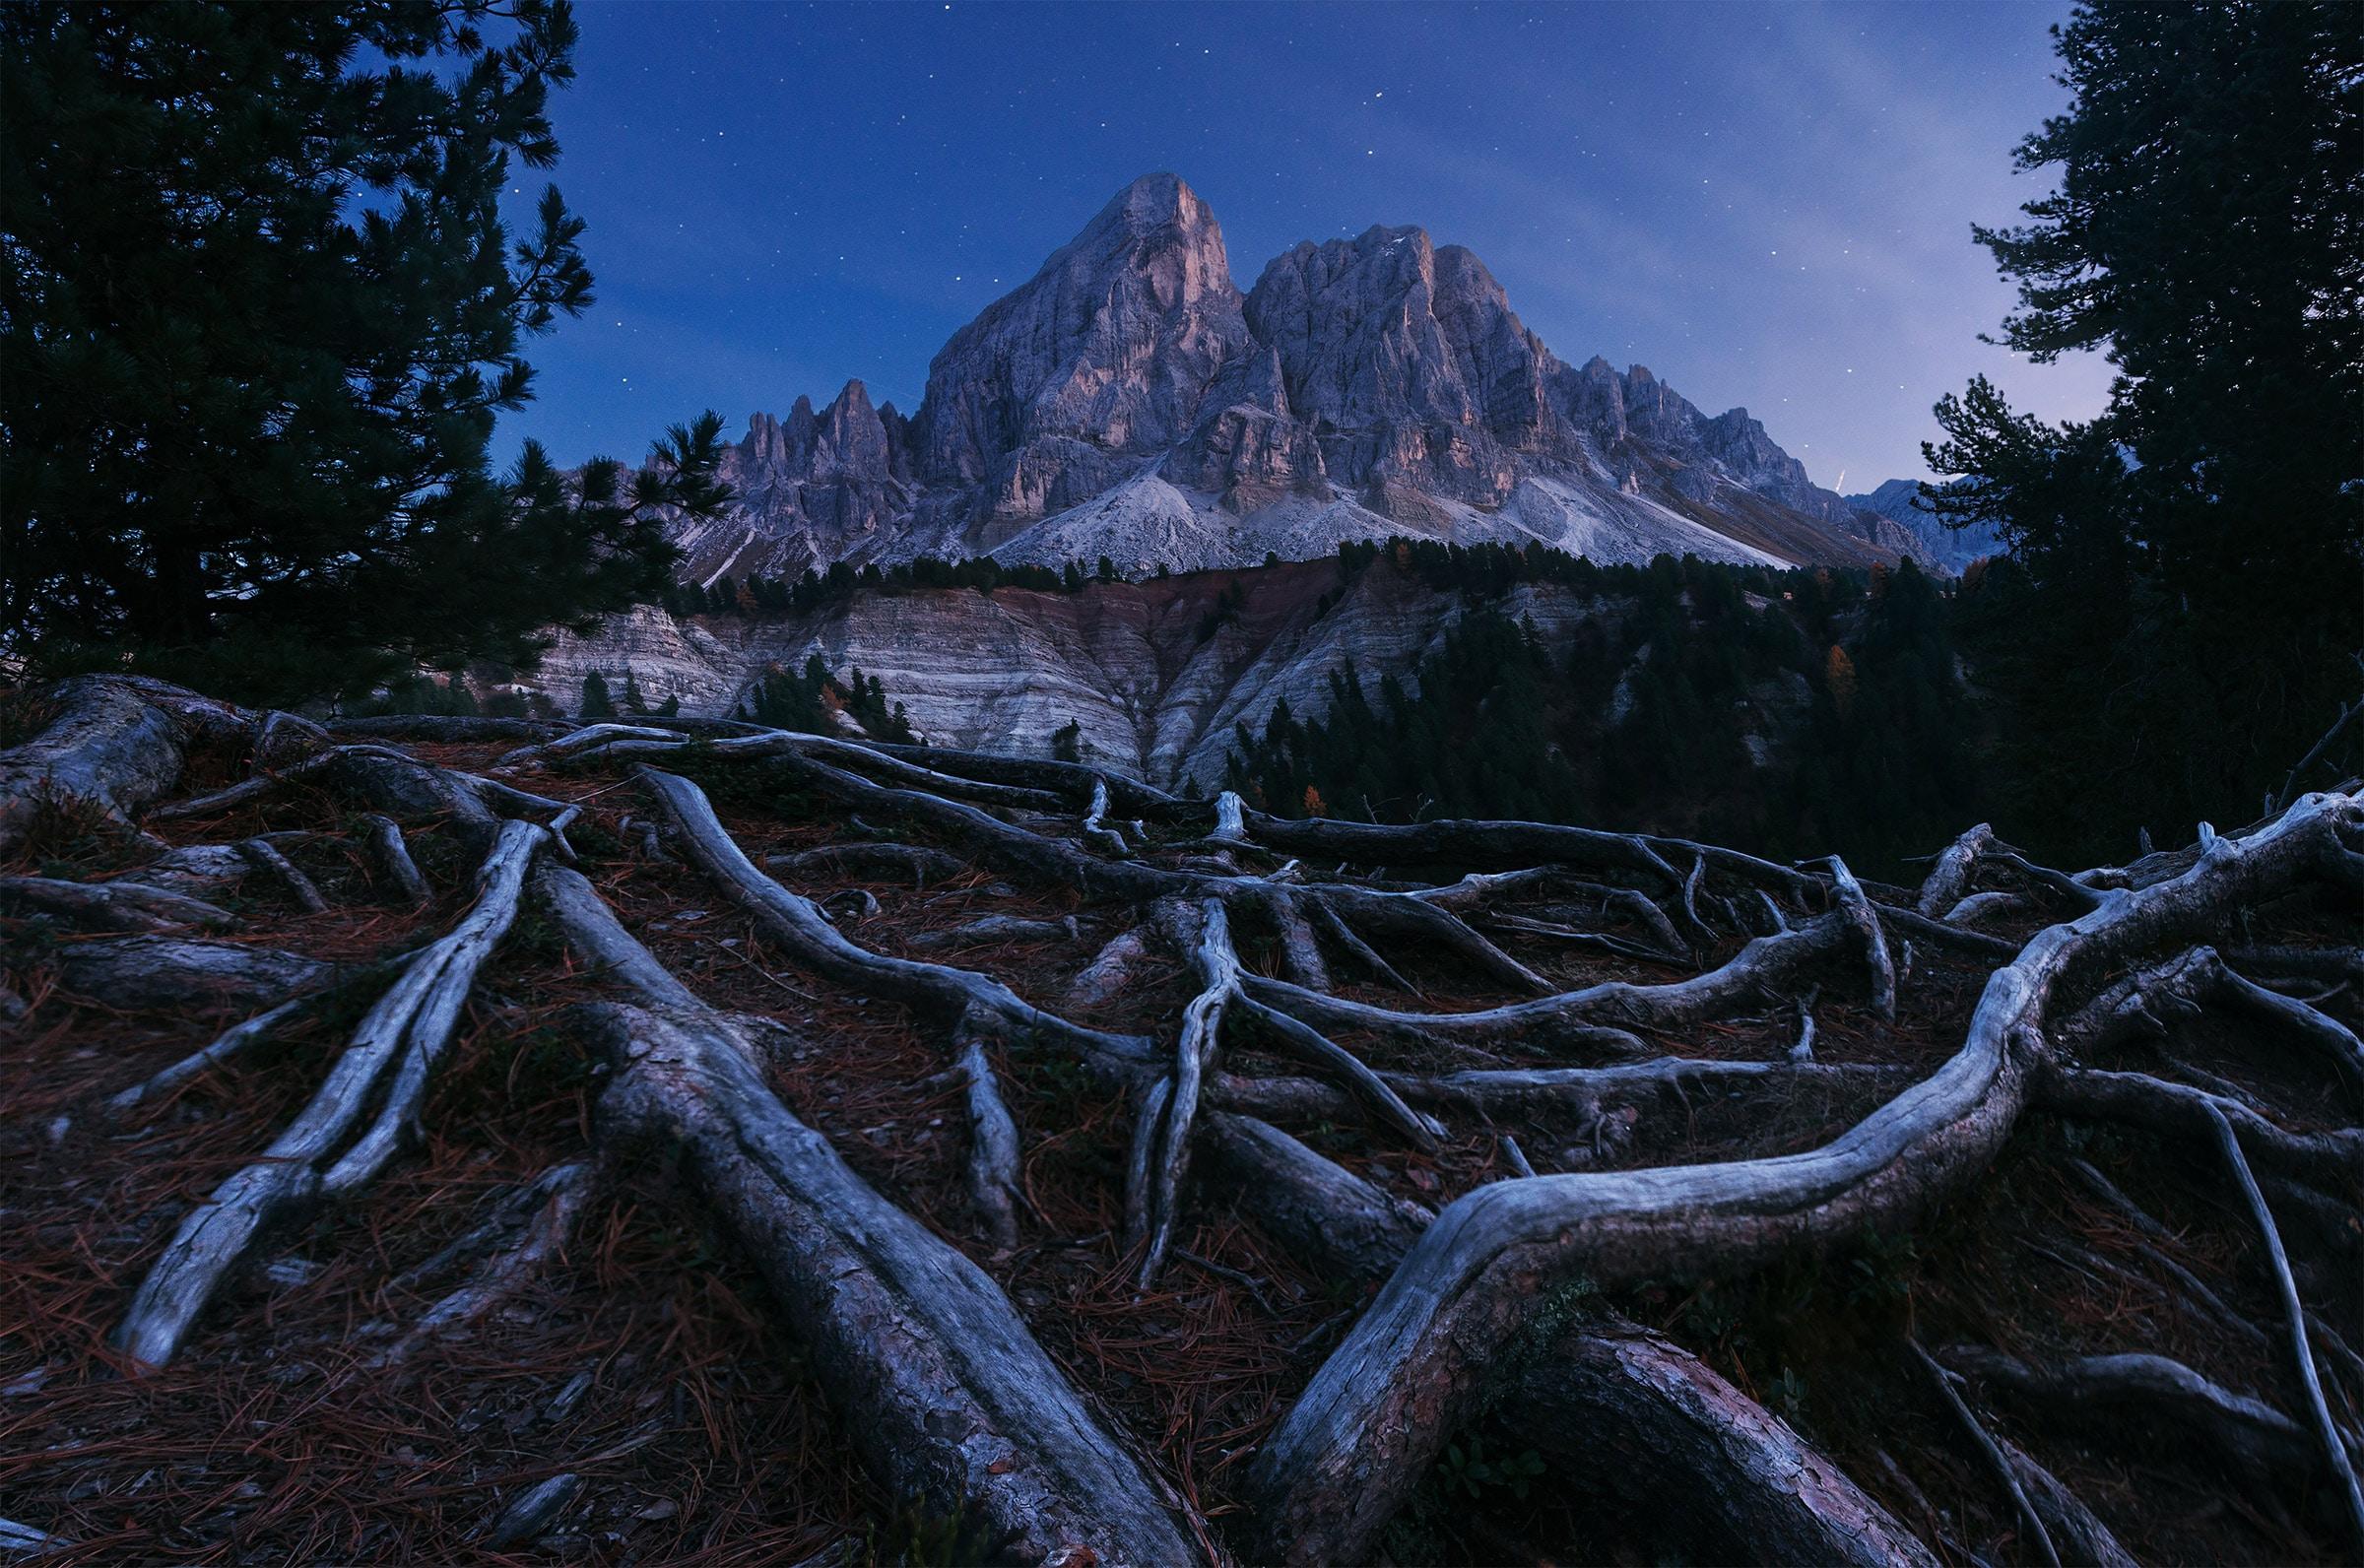 Twilight in the Dolomites in autumn with stars